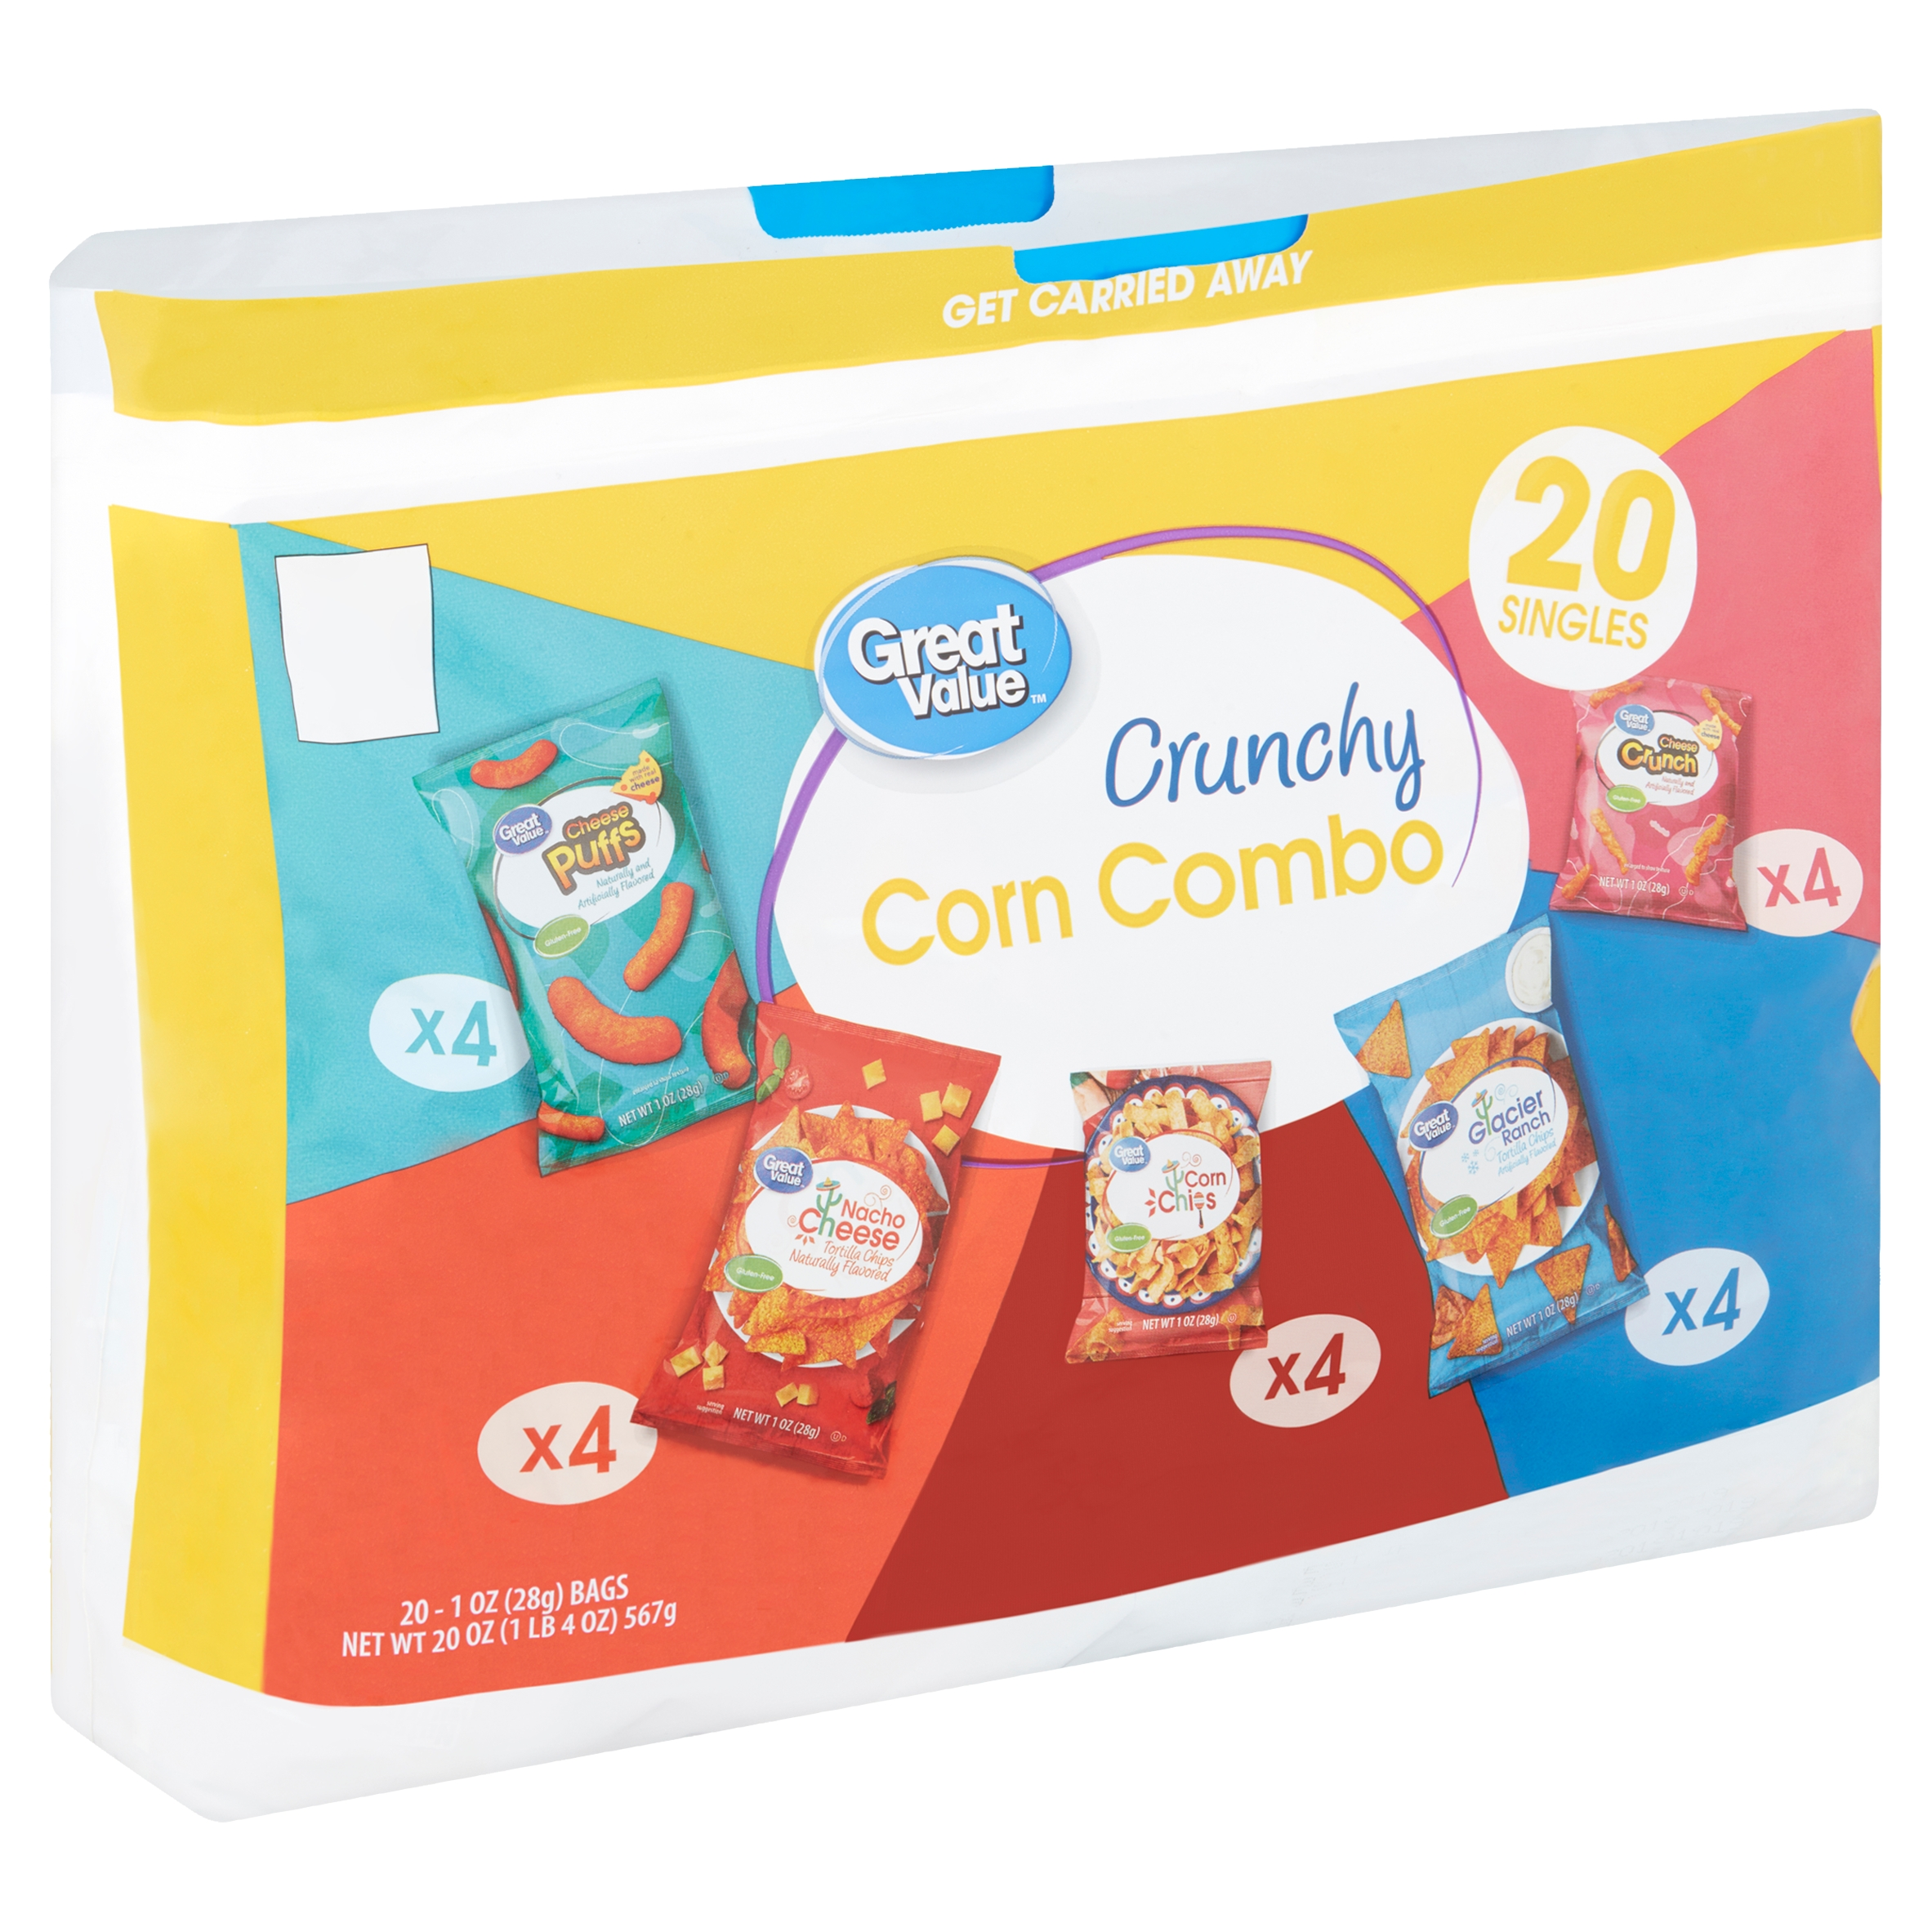 Great Value Crunchy Corn Combo Variety Snack Pack, 1 Oz., 20 Count